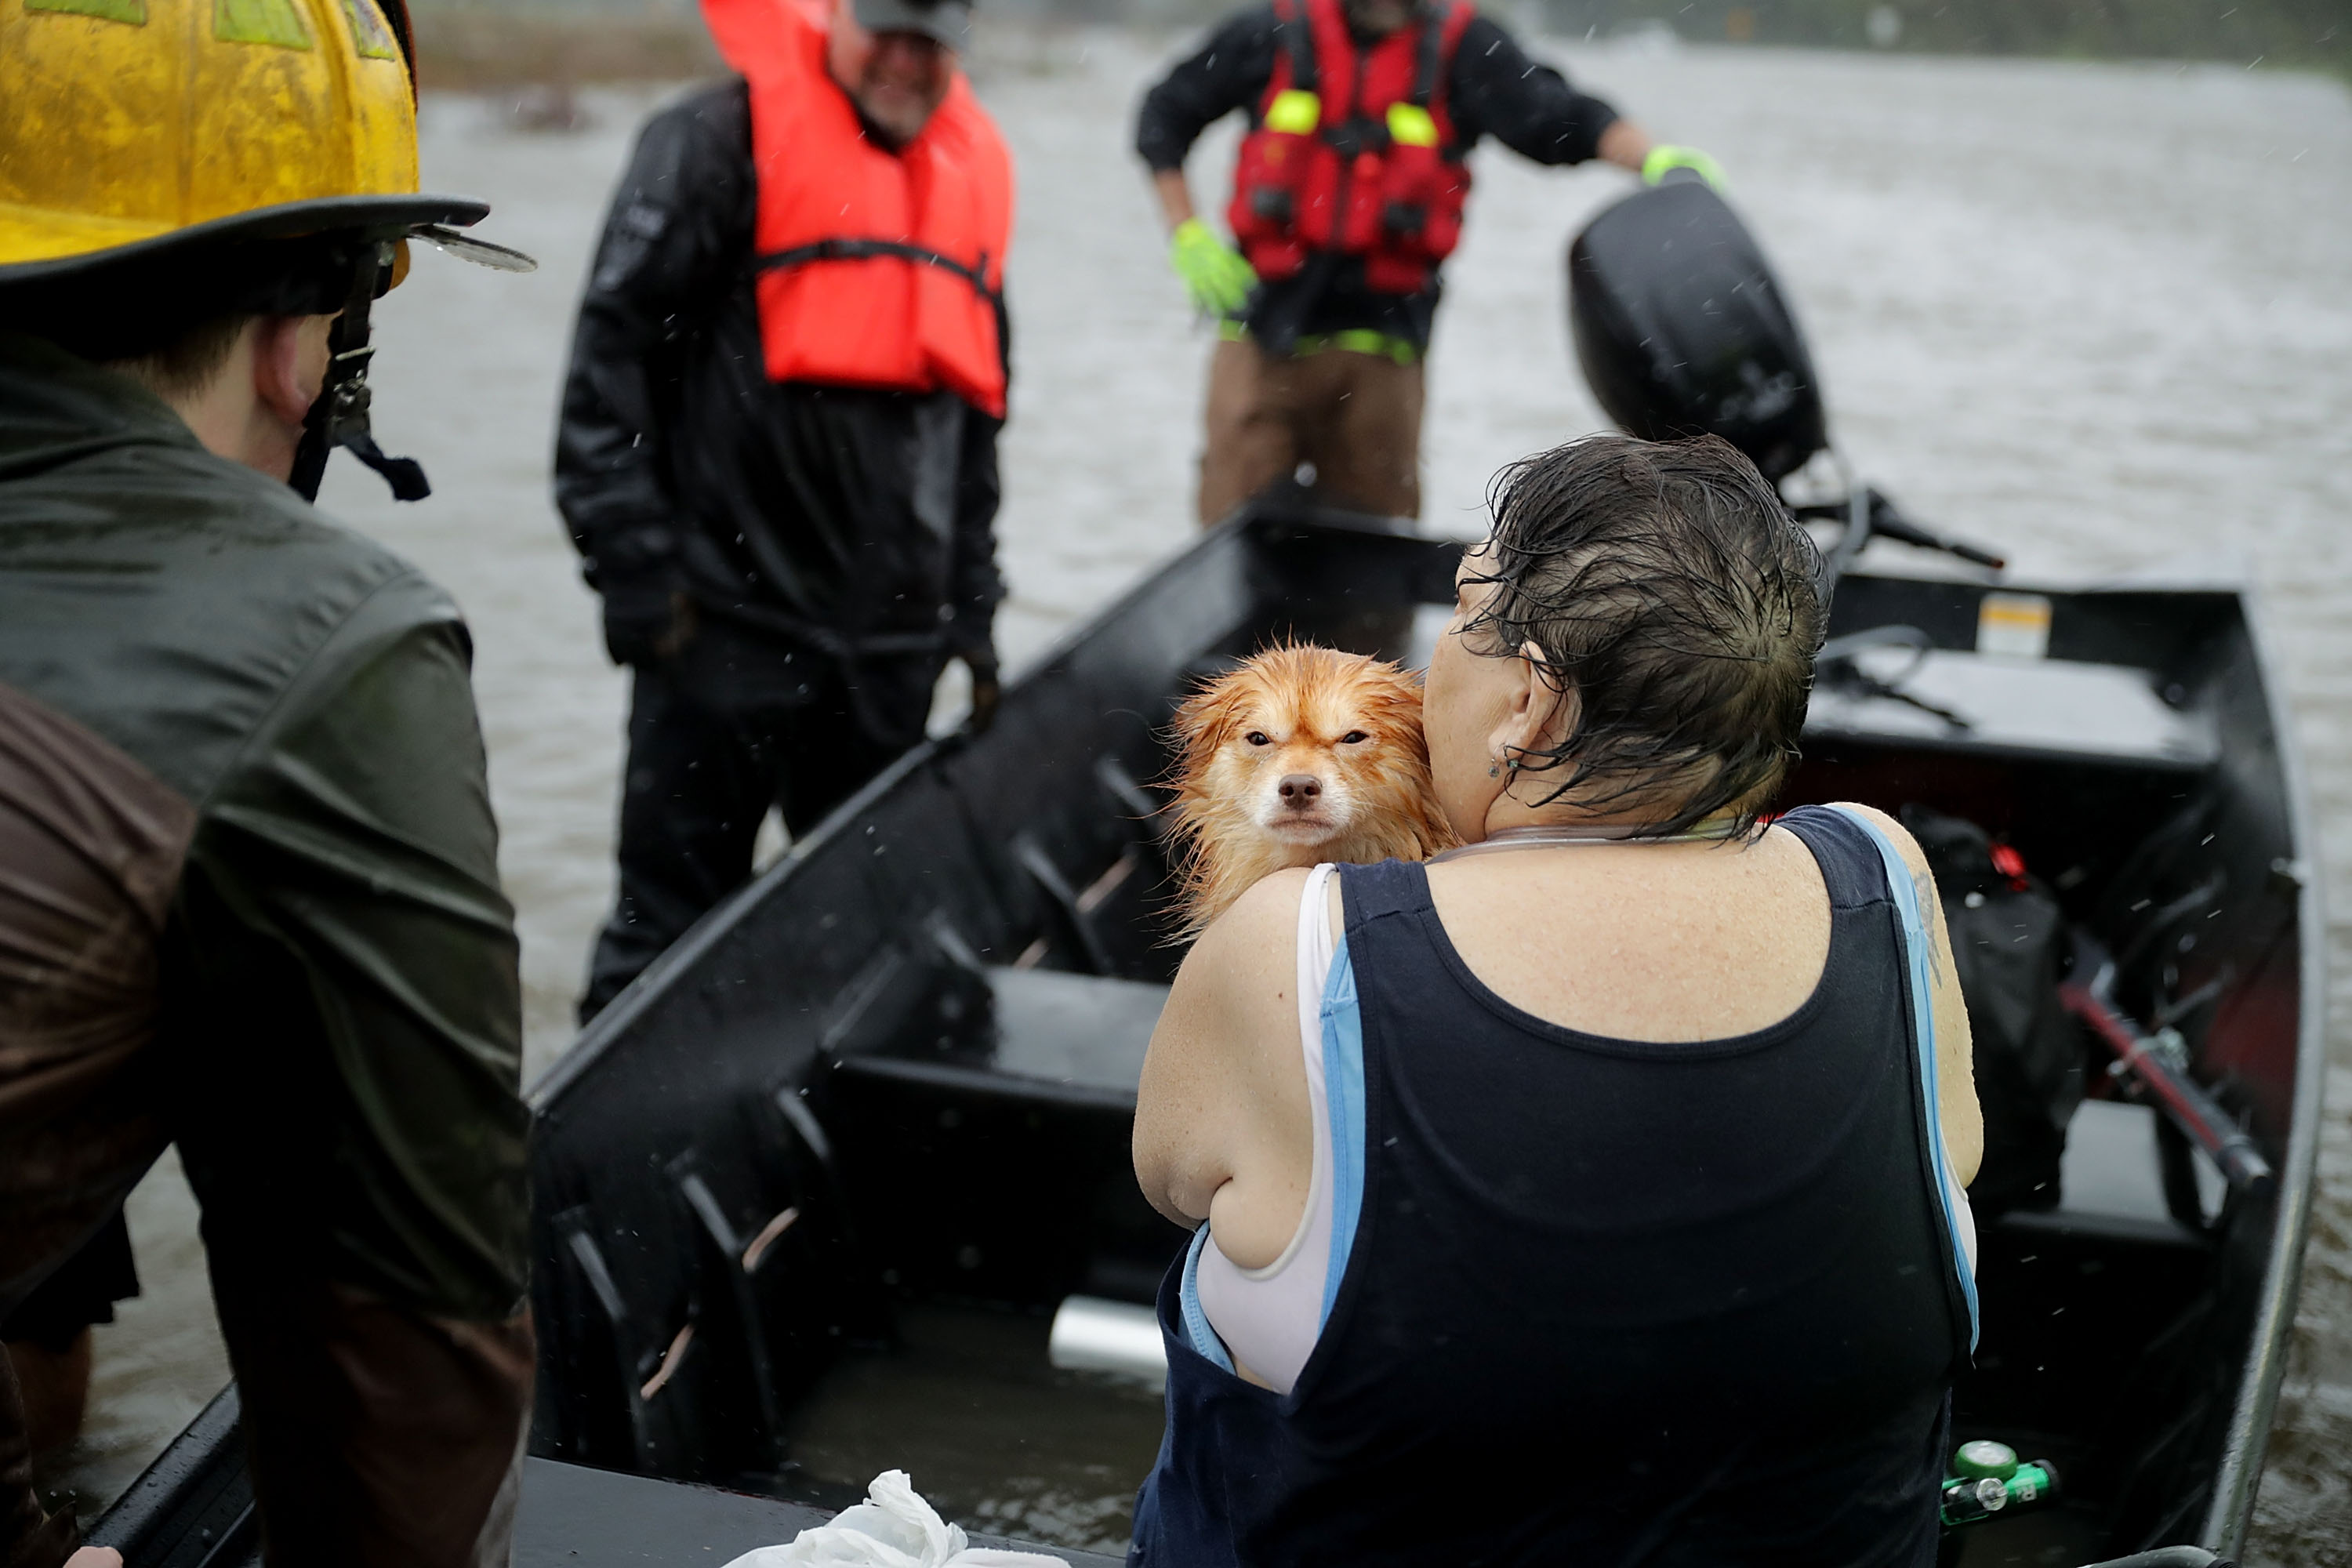 Rescue workers from Township No. 7 Fire Department and volunteers from the Civilian Crisis Response Team use a boat to rescue a woman and her dog from their flooded home during Hurricane Florence in James City, NC on Sept. 14, 2018.